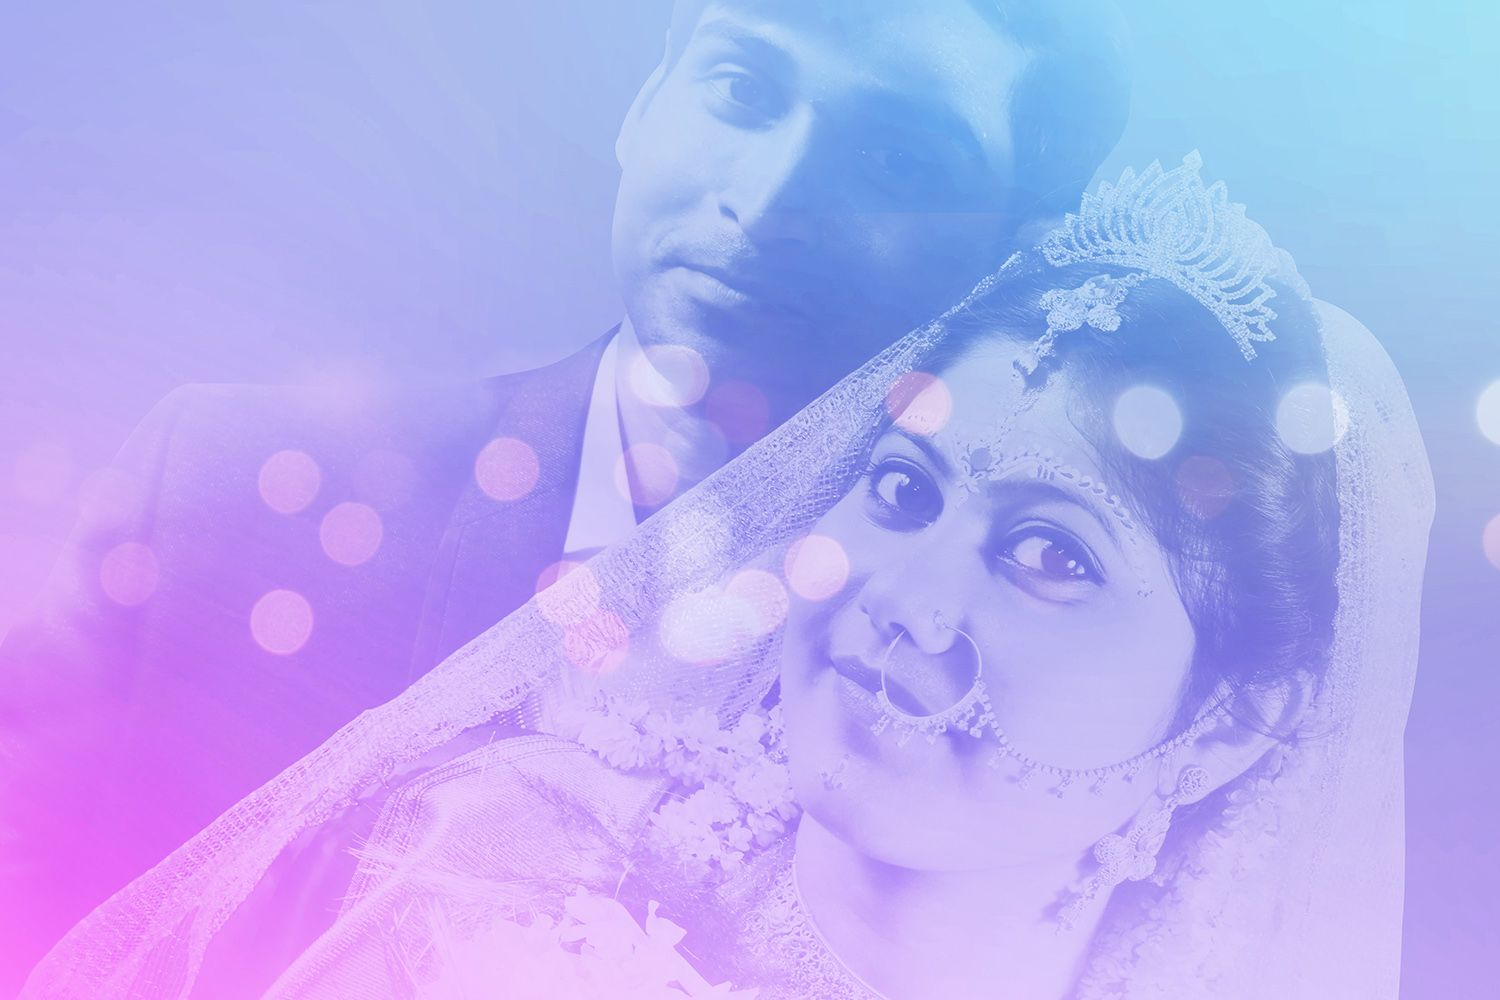 Wedding Photographer in Asansol: Arcusphotography.in is one of the ...